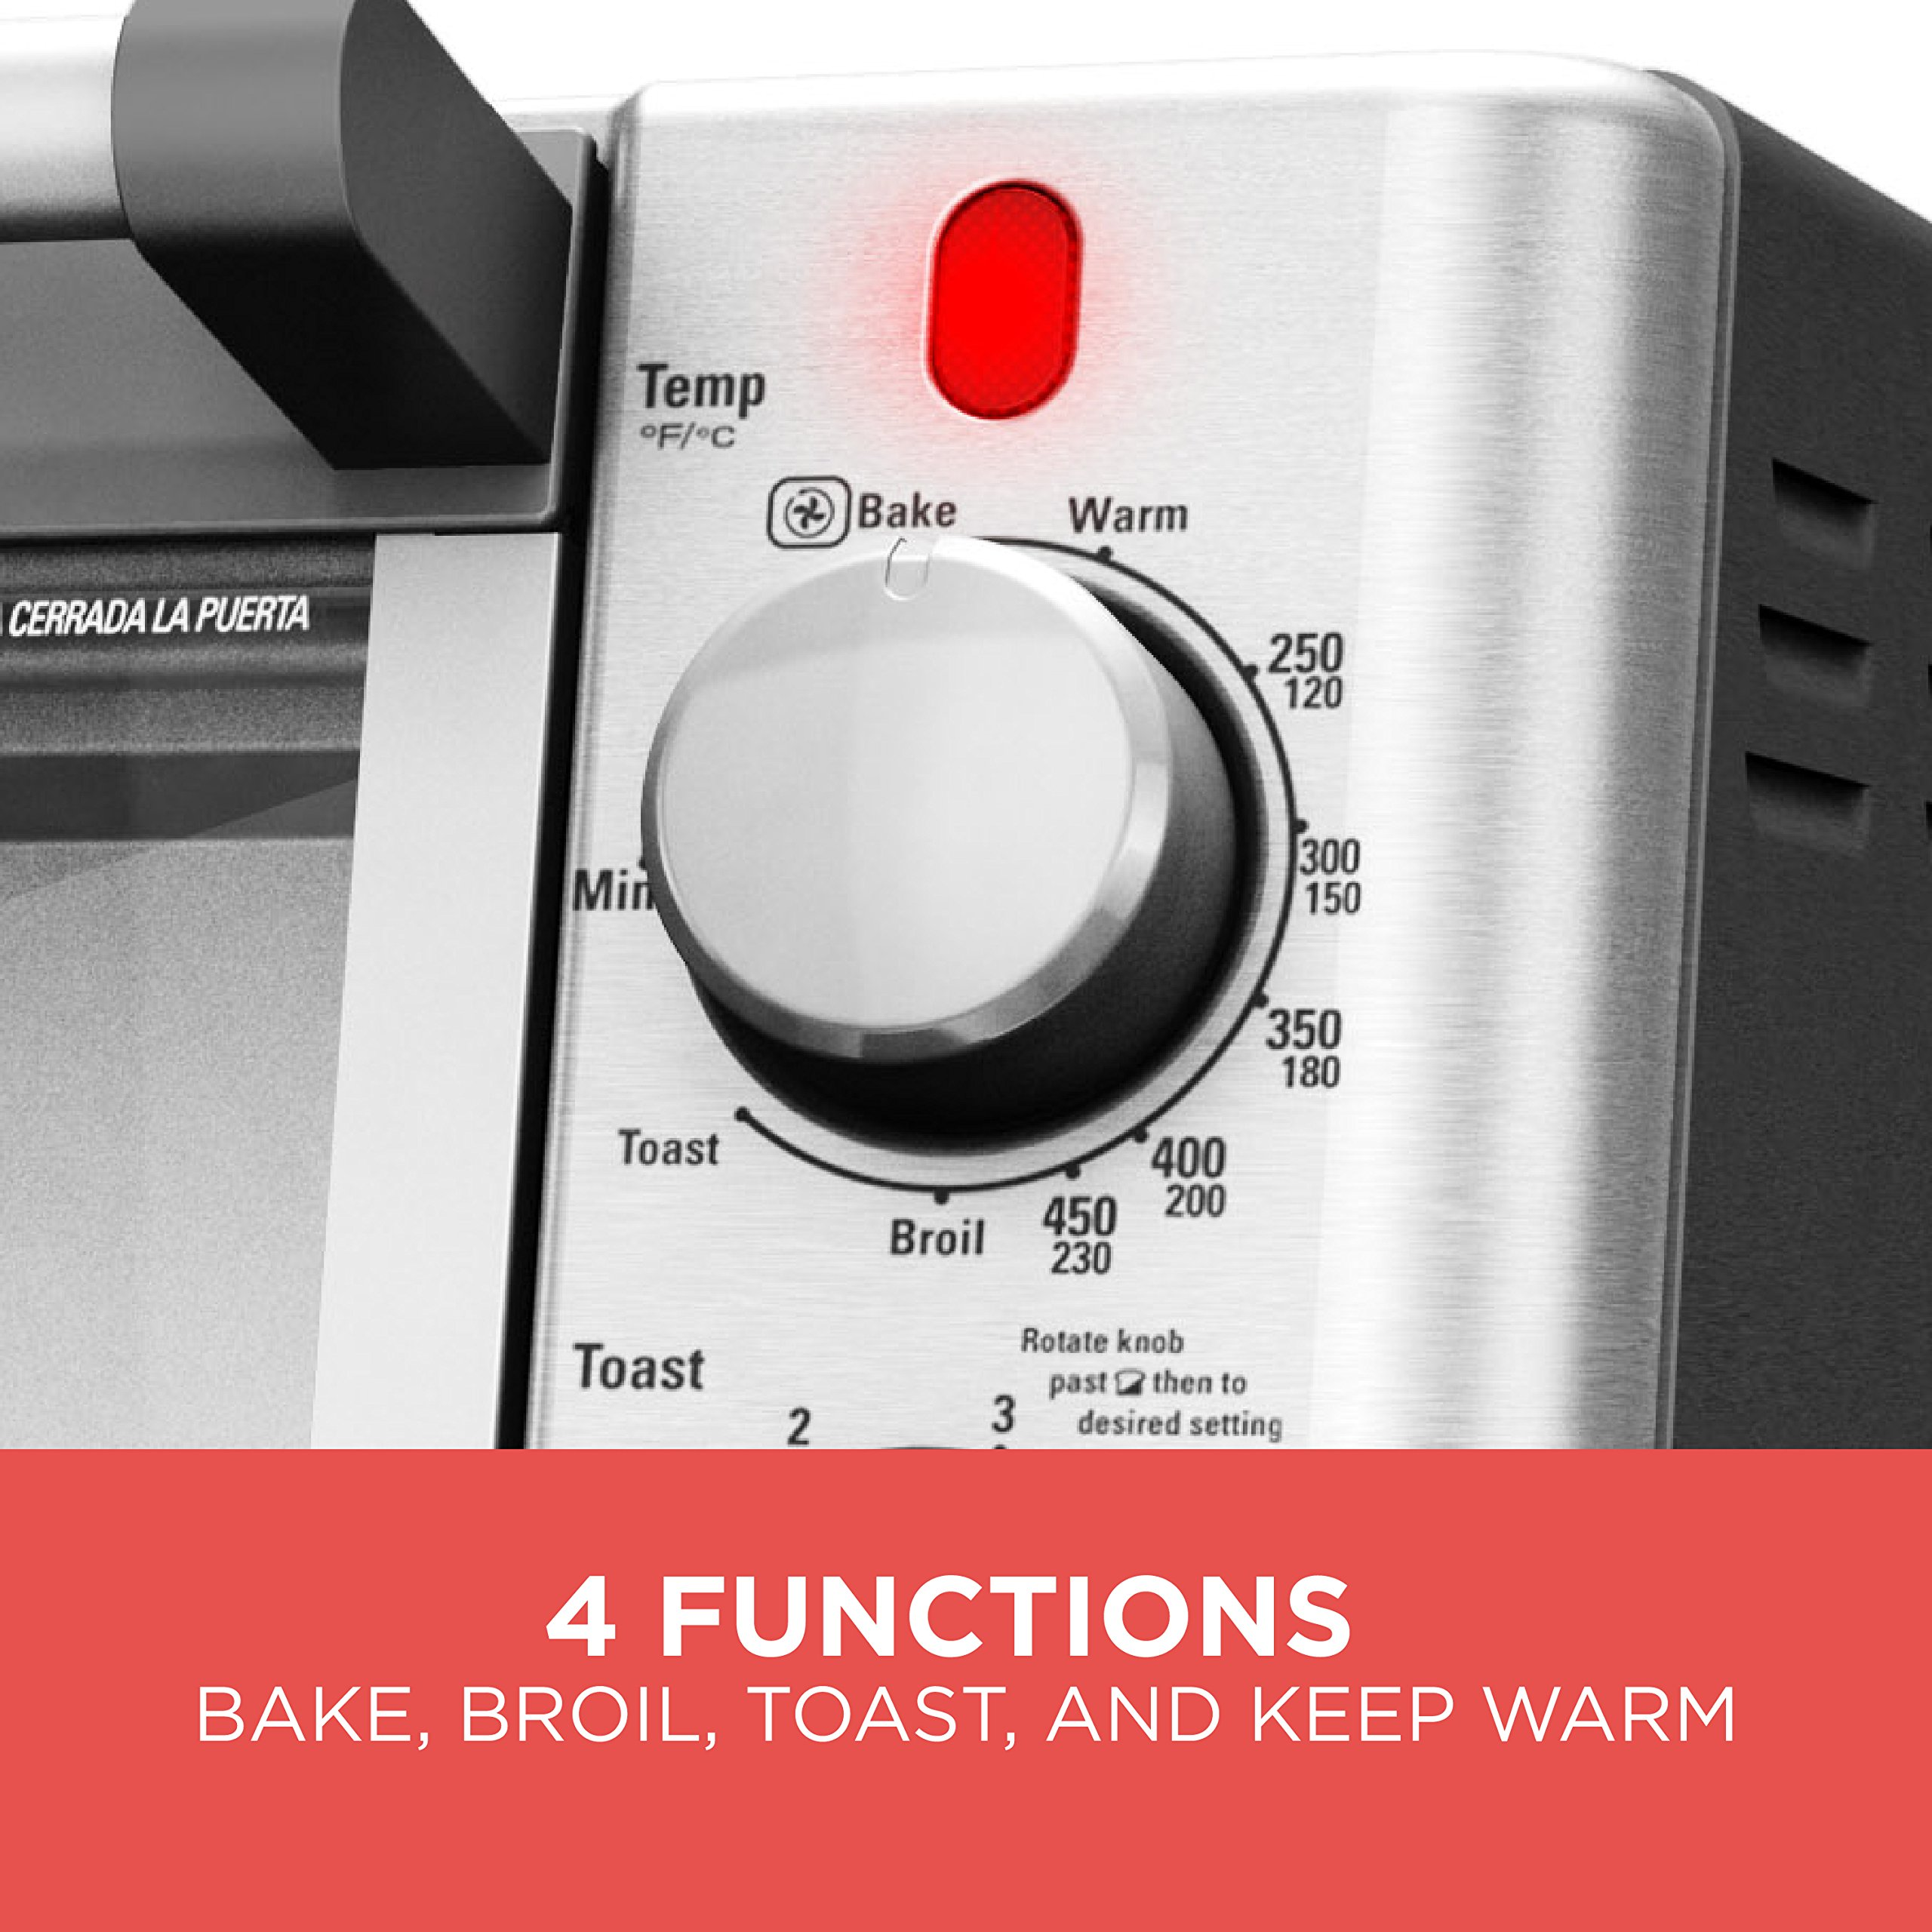 BLACK+DECKER 6-Slice Convection Countertop Toaster Oven, Stainless Steel/Black, TO2050S by BLACK+DECKER (Image #2)